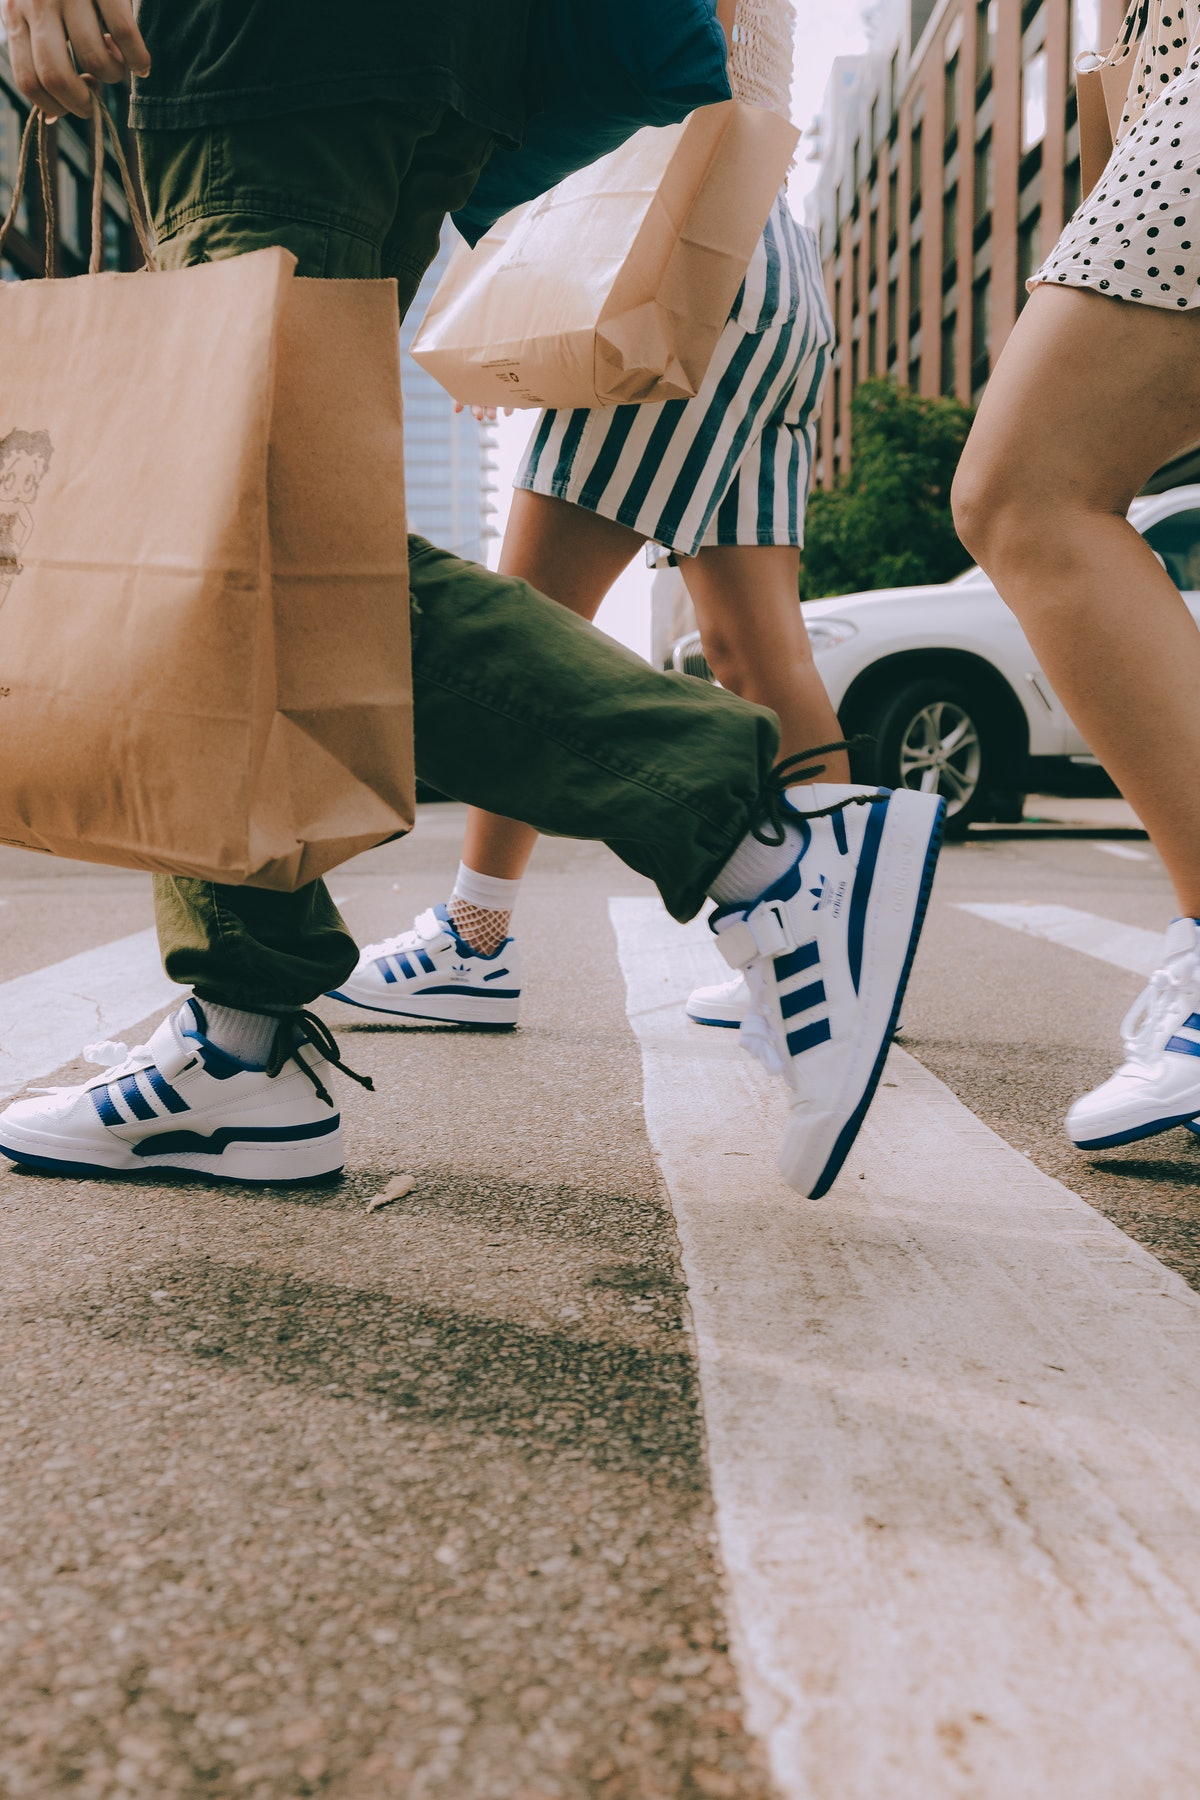 A group of women walking across the street, all of them wearing blue and white Adidas Forum Low snea...